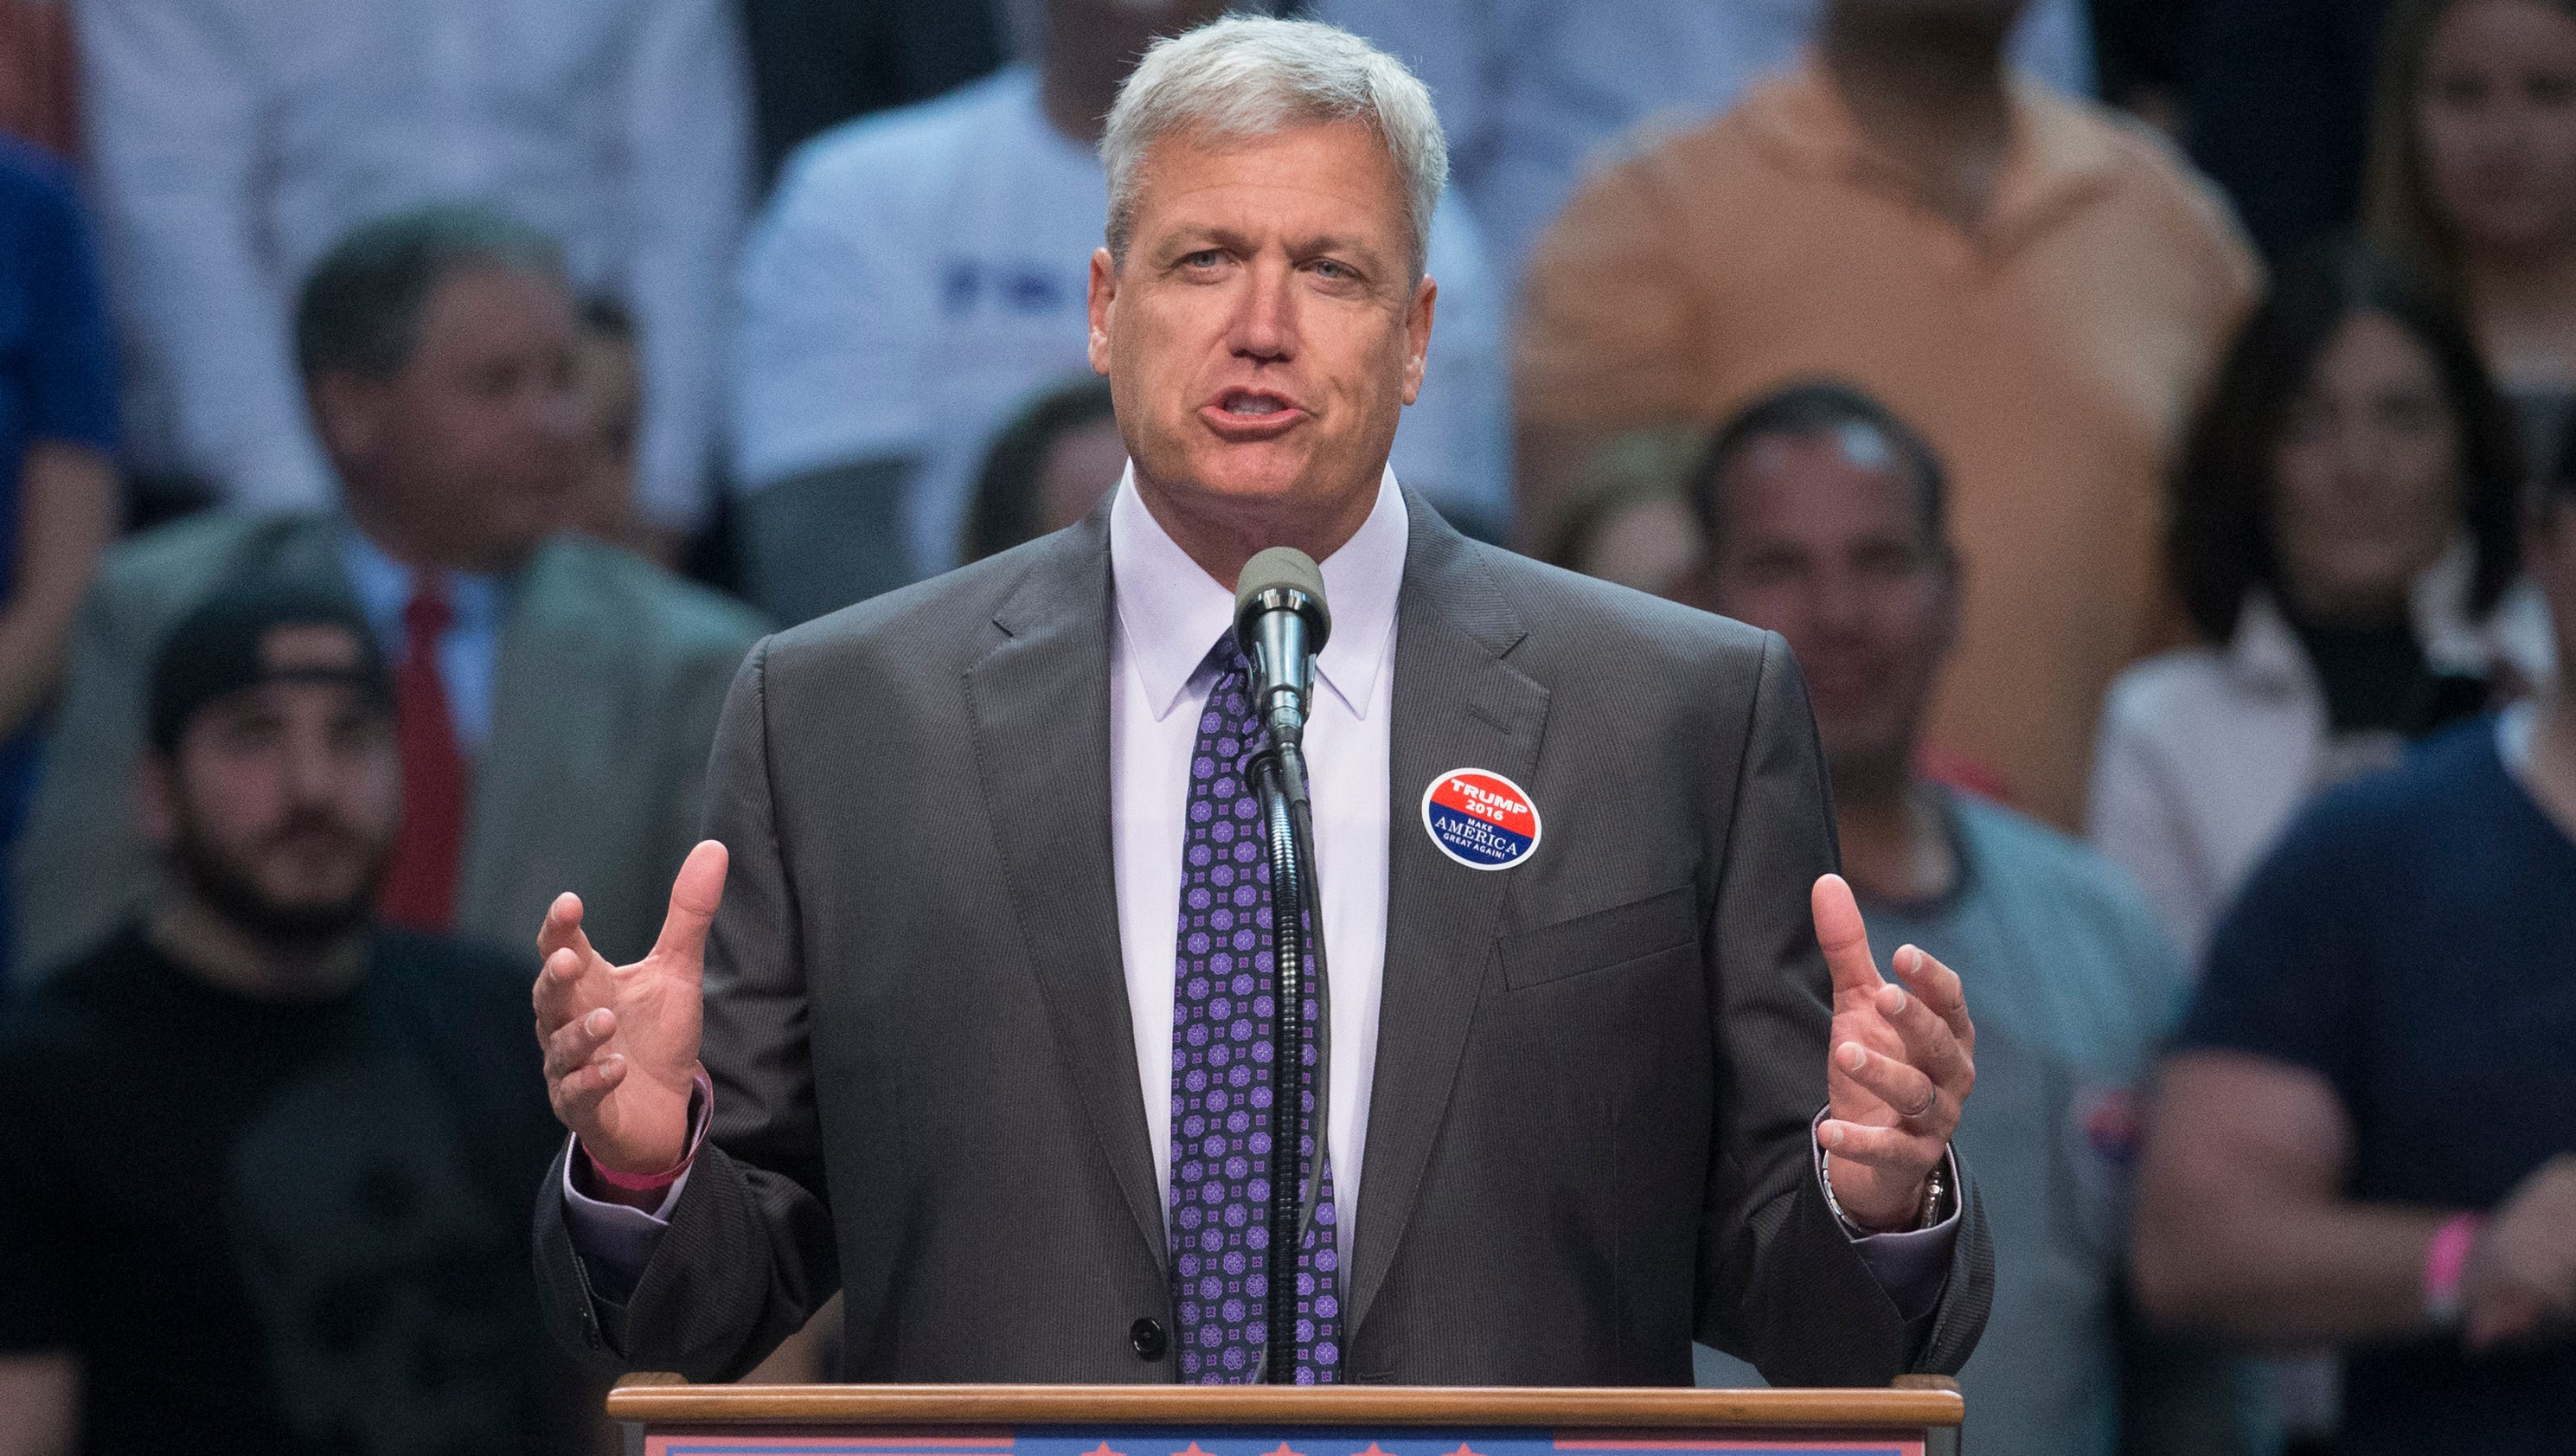 Rex ryan makes espn debut saturday on college football game